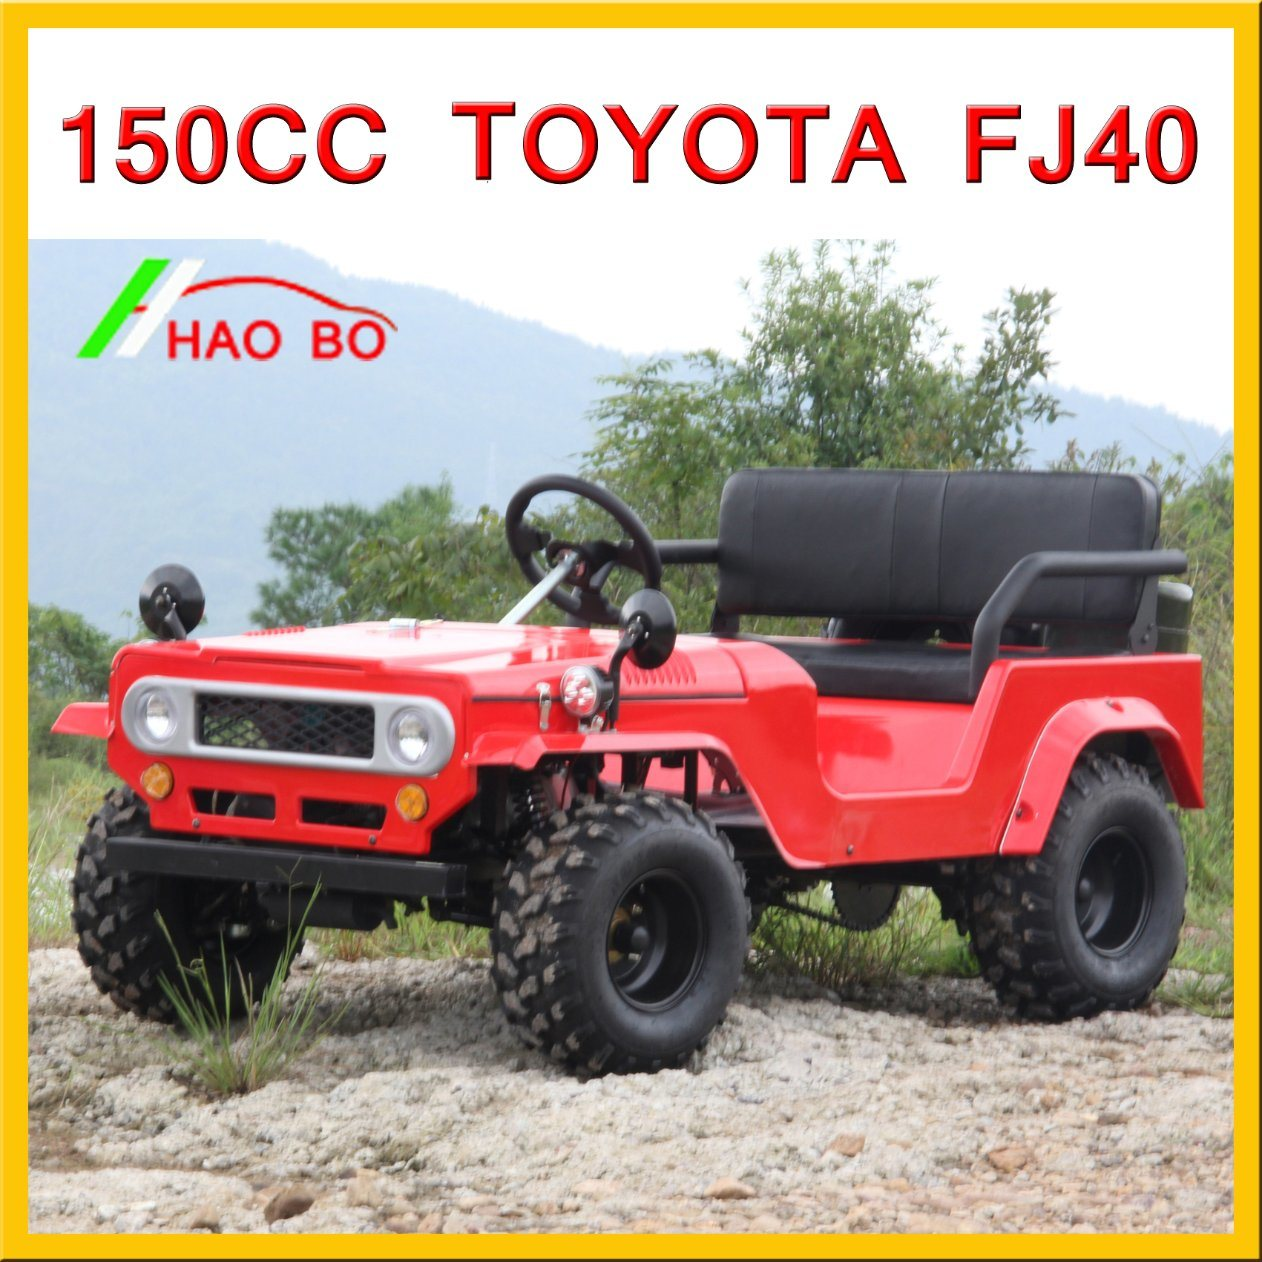 150cc Toyota Land Cruiser for Right Hand Driving